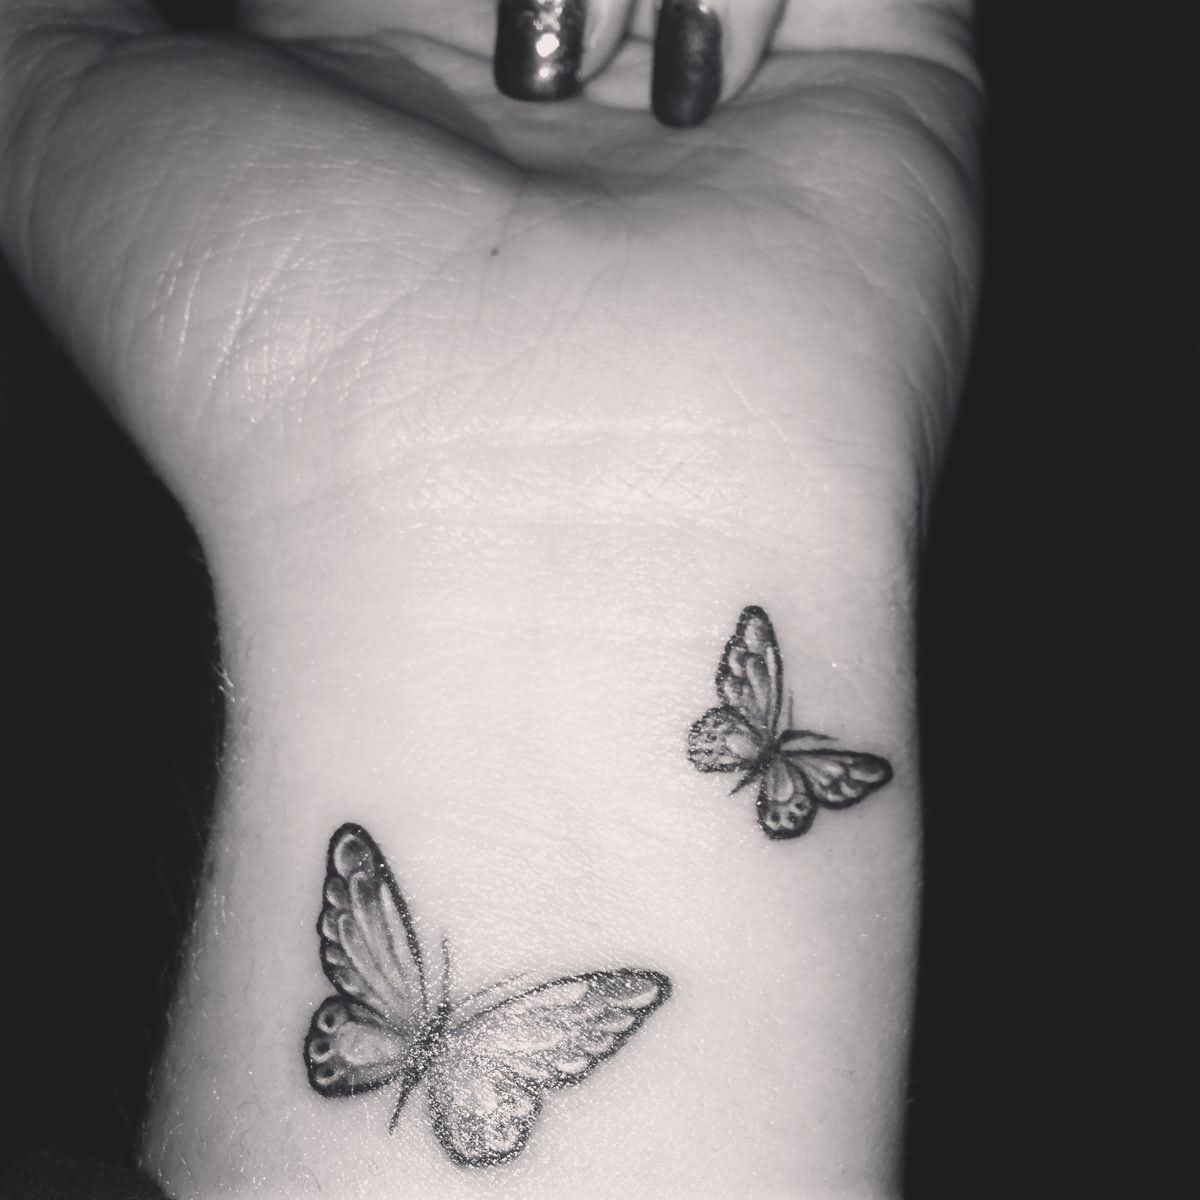 Grey And Black Butterfly Tattoos On Wrist For Girls Tattoos regarding dimensions 1200 X 1200